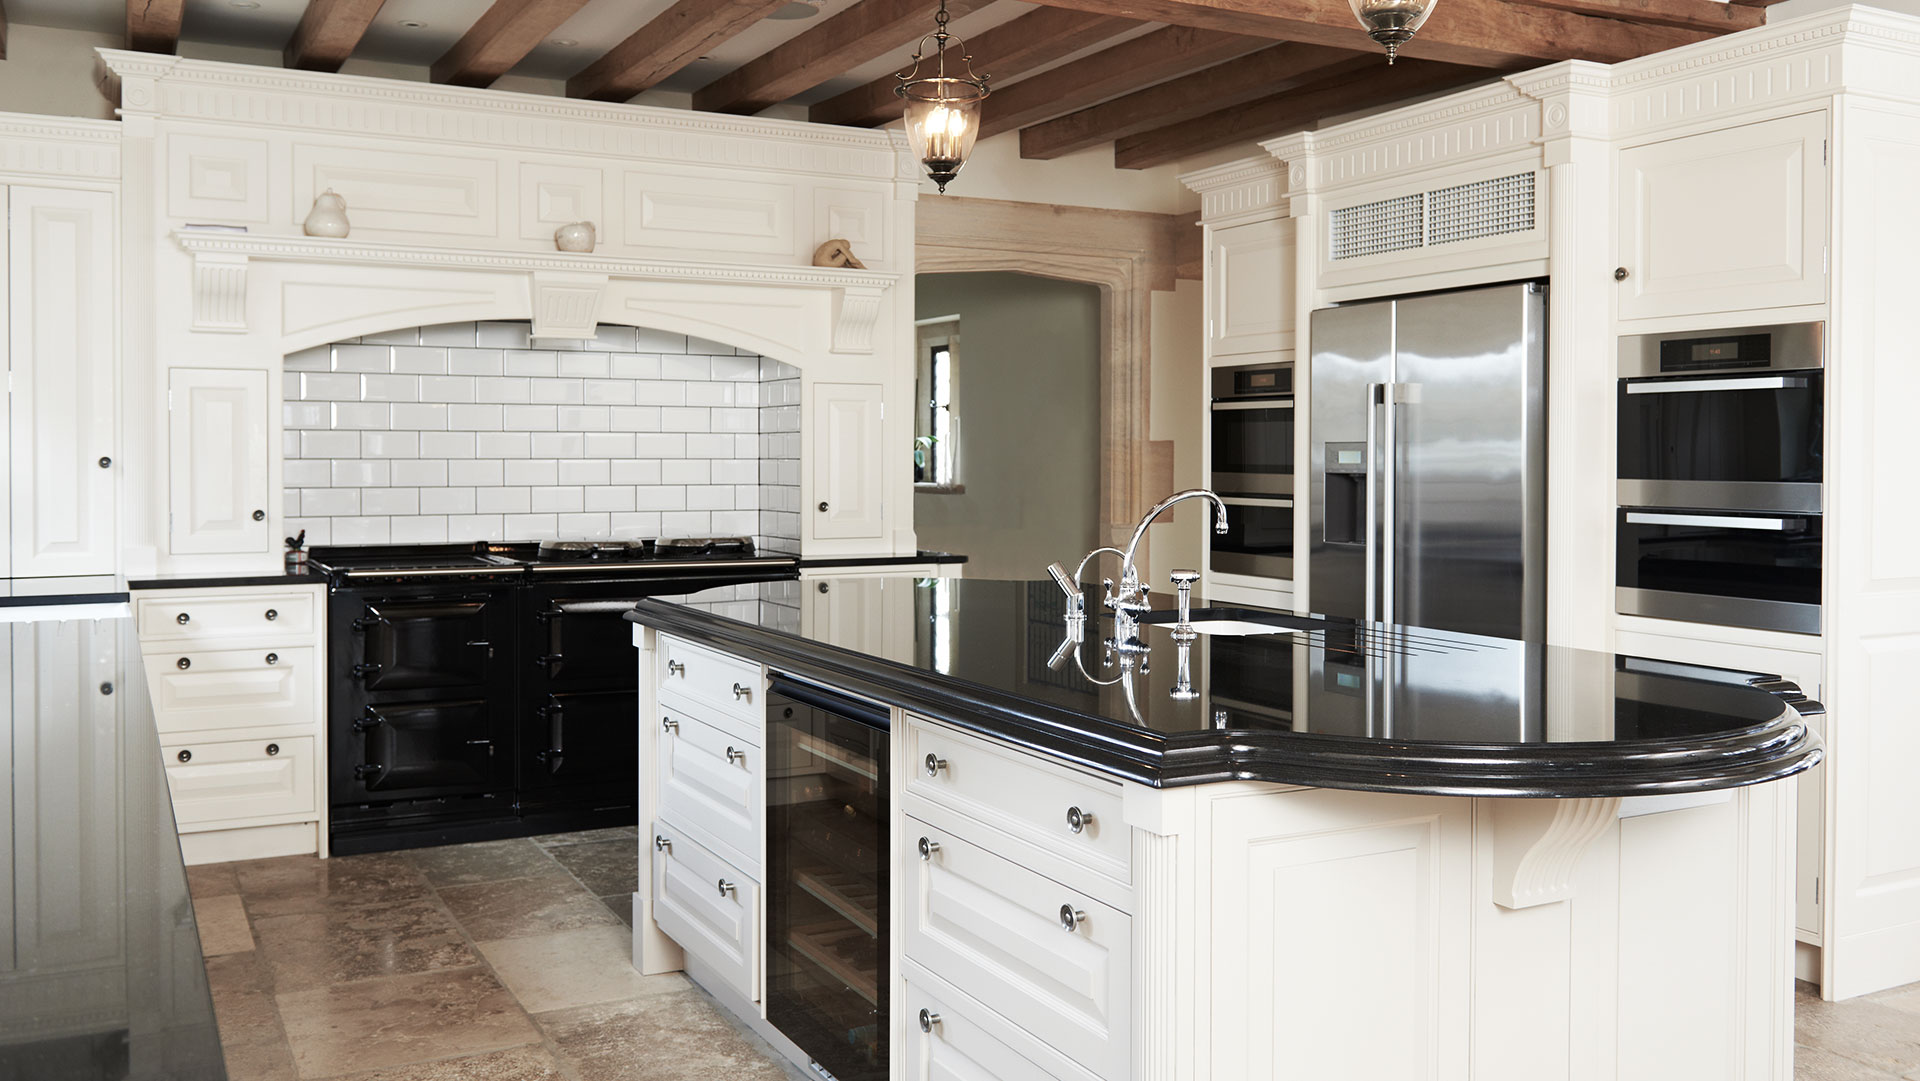 Kitchen Cabinets Repair Calgary Home Calgary Bathroom Remodels Bathroom Renovations And